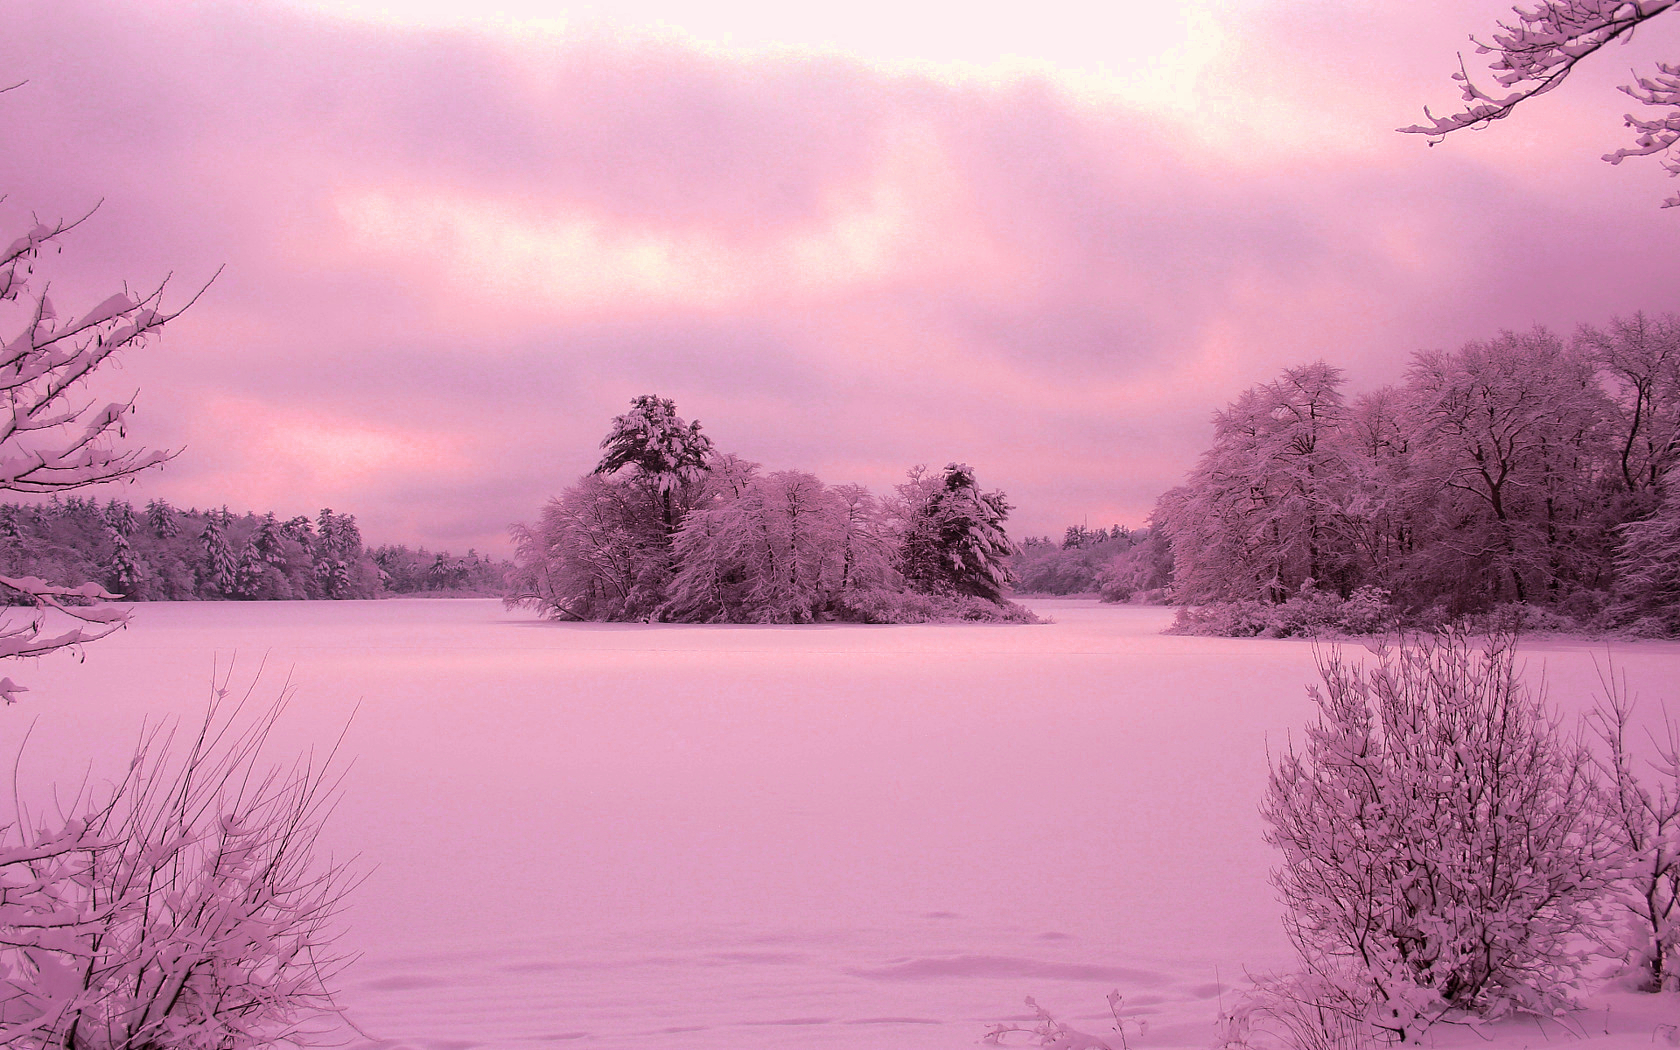 purple sunset over winter landscape wallpaper and